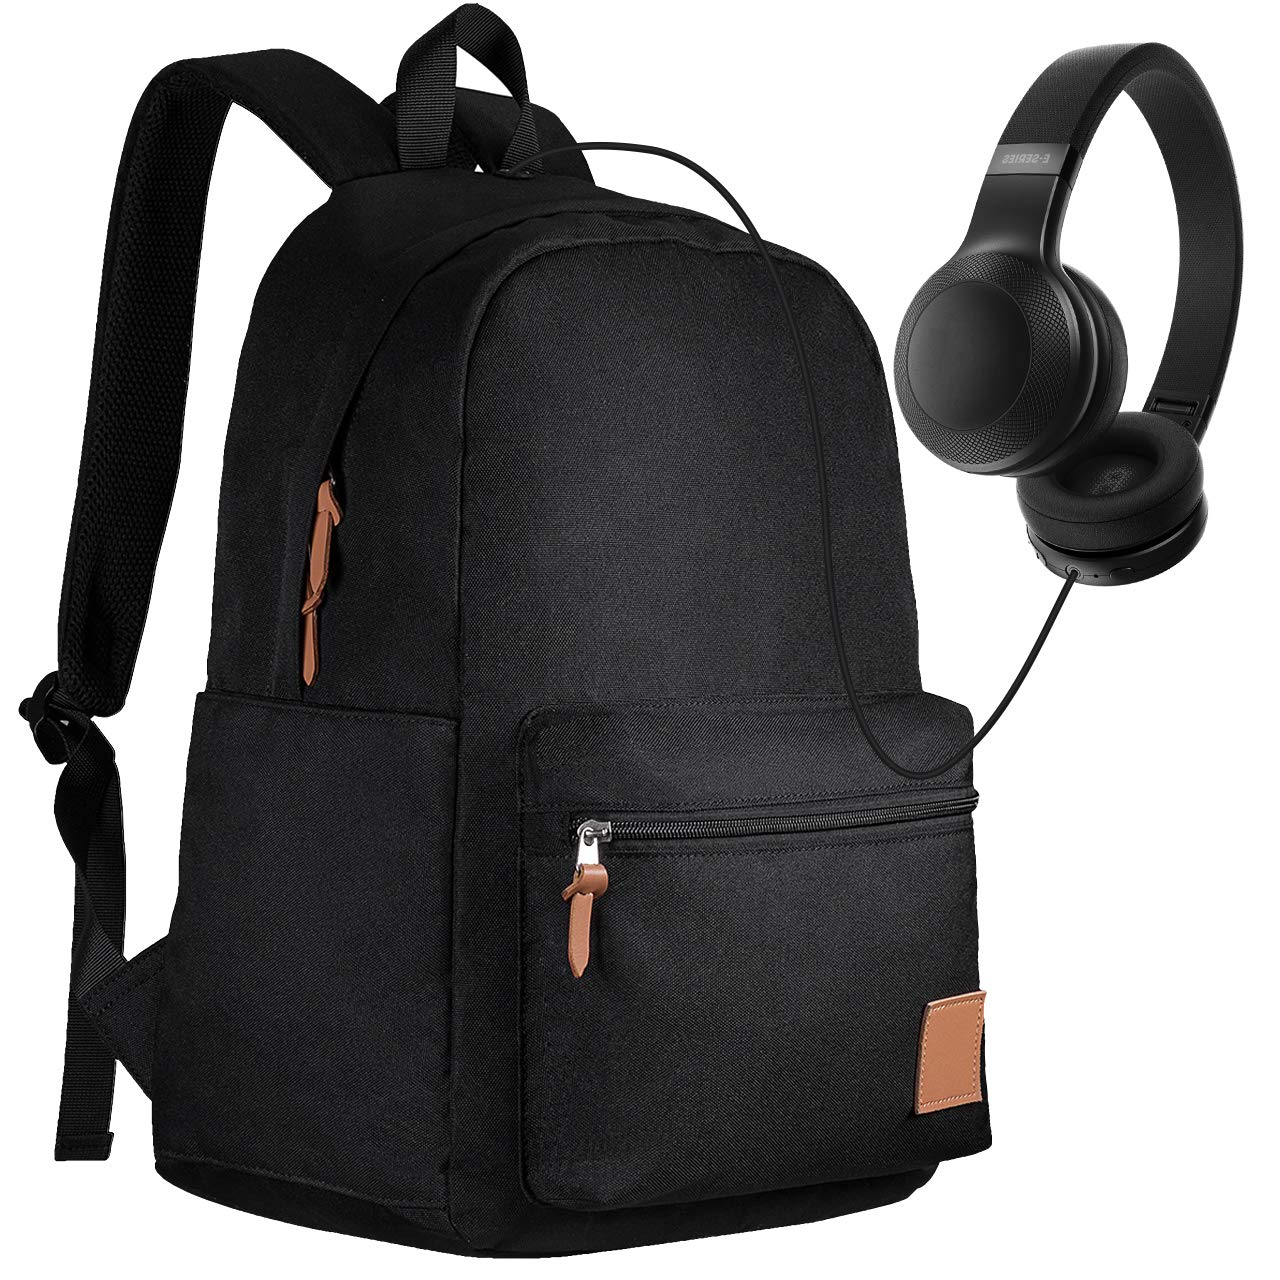 PICTEK Ultralight School Backpack with Headphone Port for Boy/Girl/University, 25L Laptop Backpack fits 15.6'' Laptops, Waterproof Backpack for College School Outdoor and Daily Use, Black